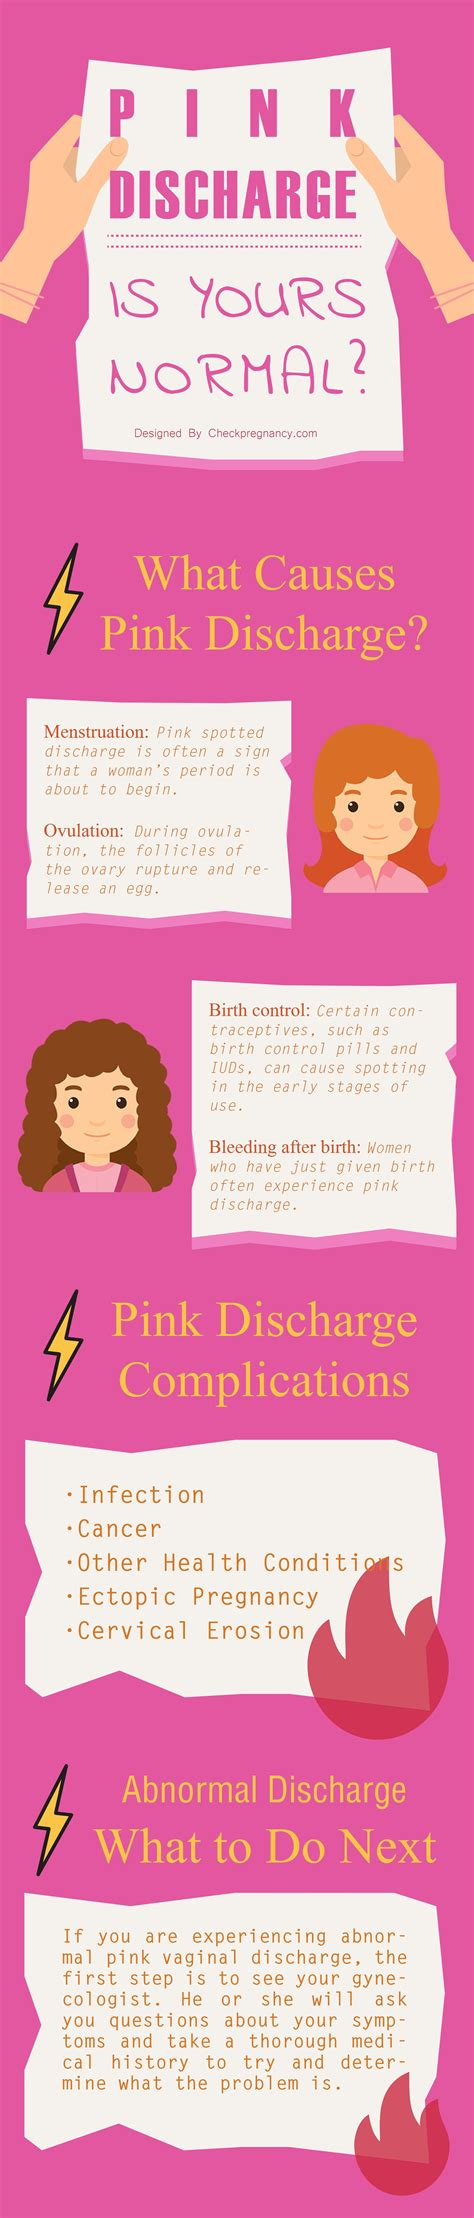 Pink Discharge Is Yours Normal Causes Complications